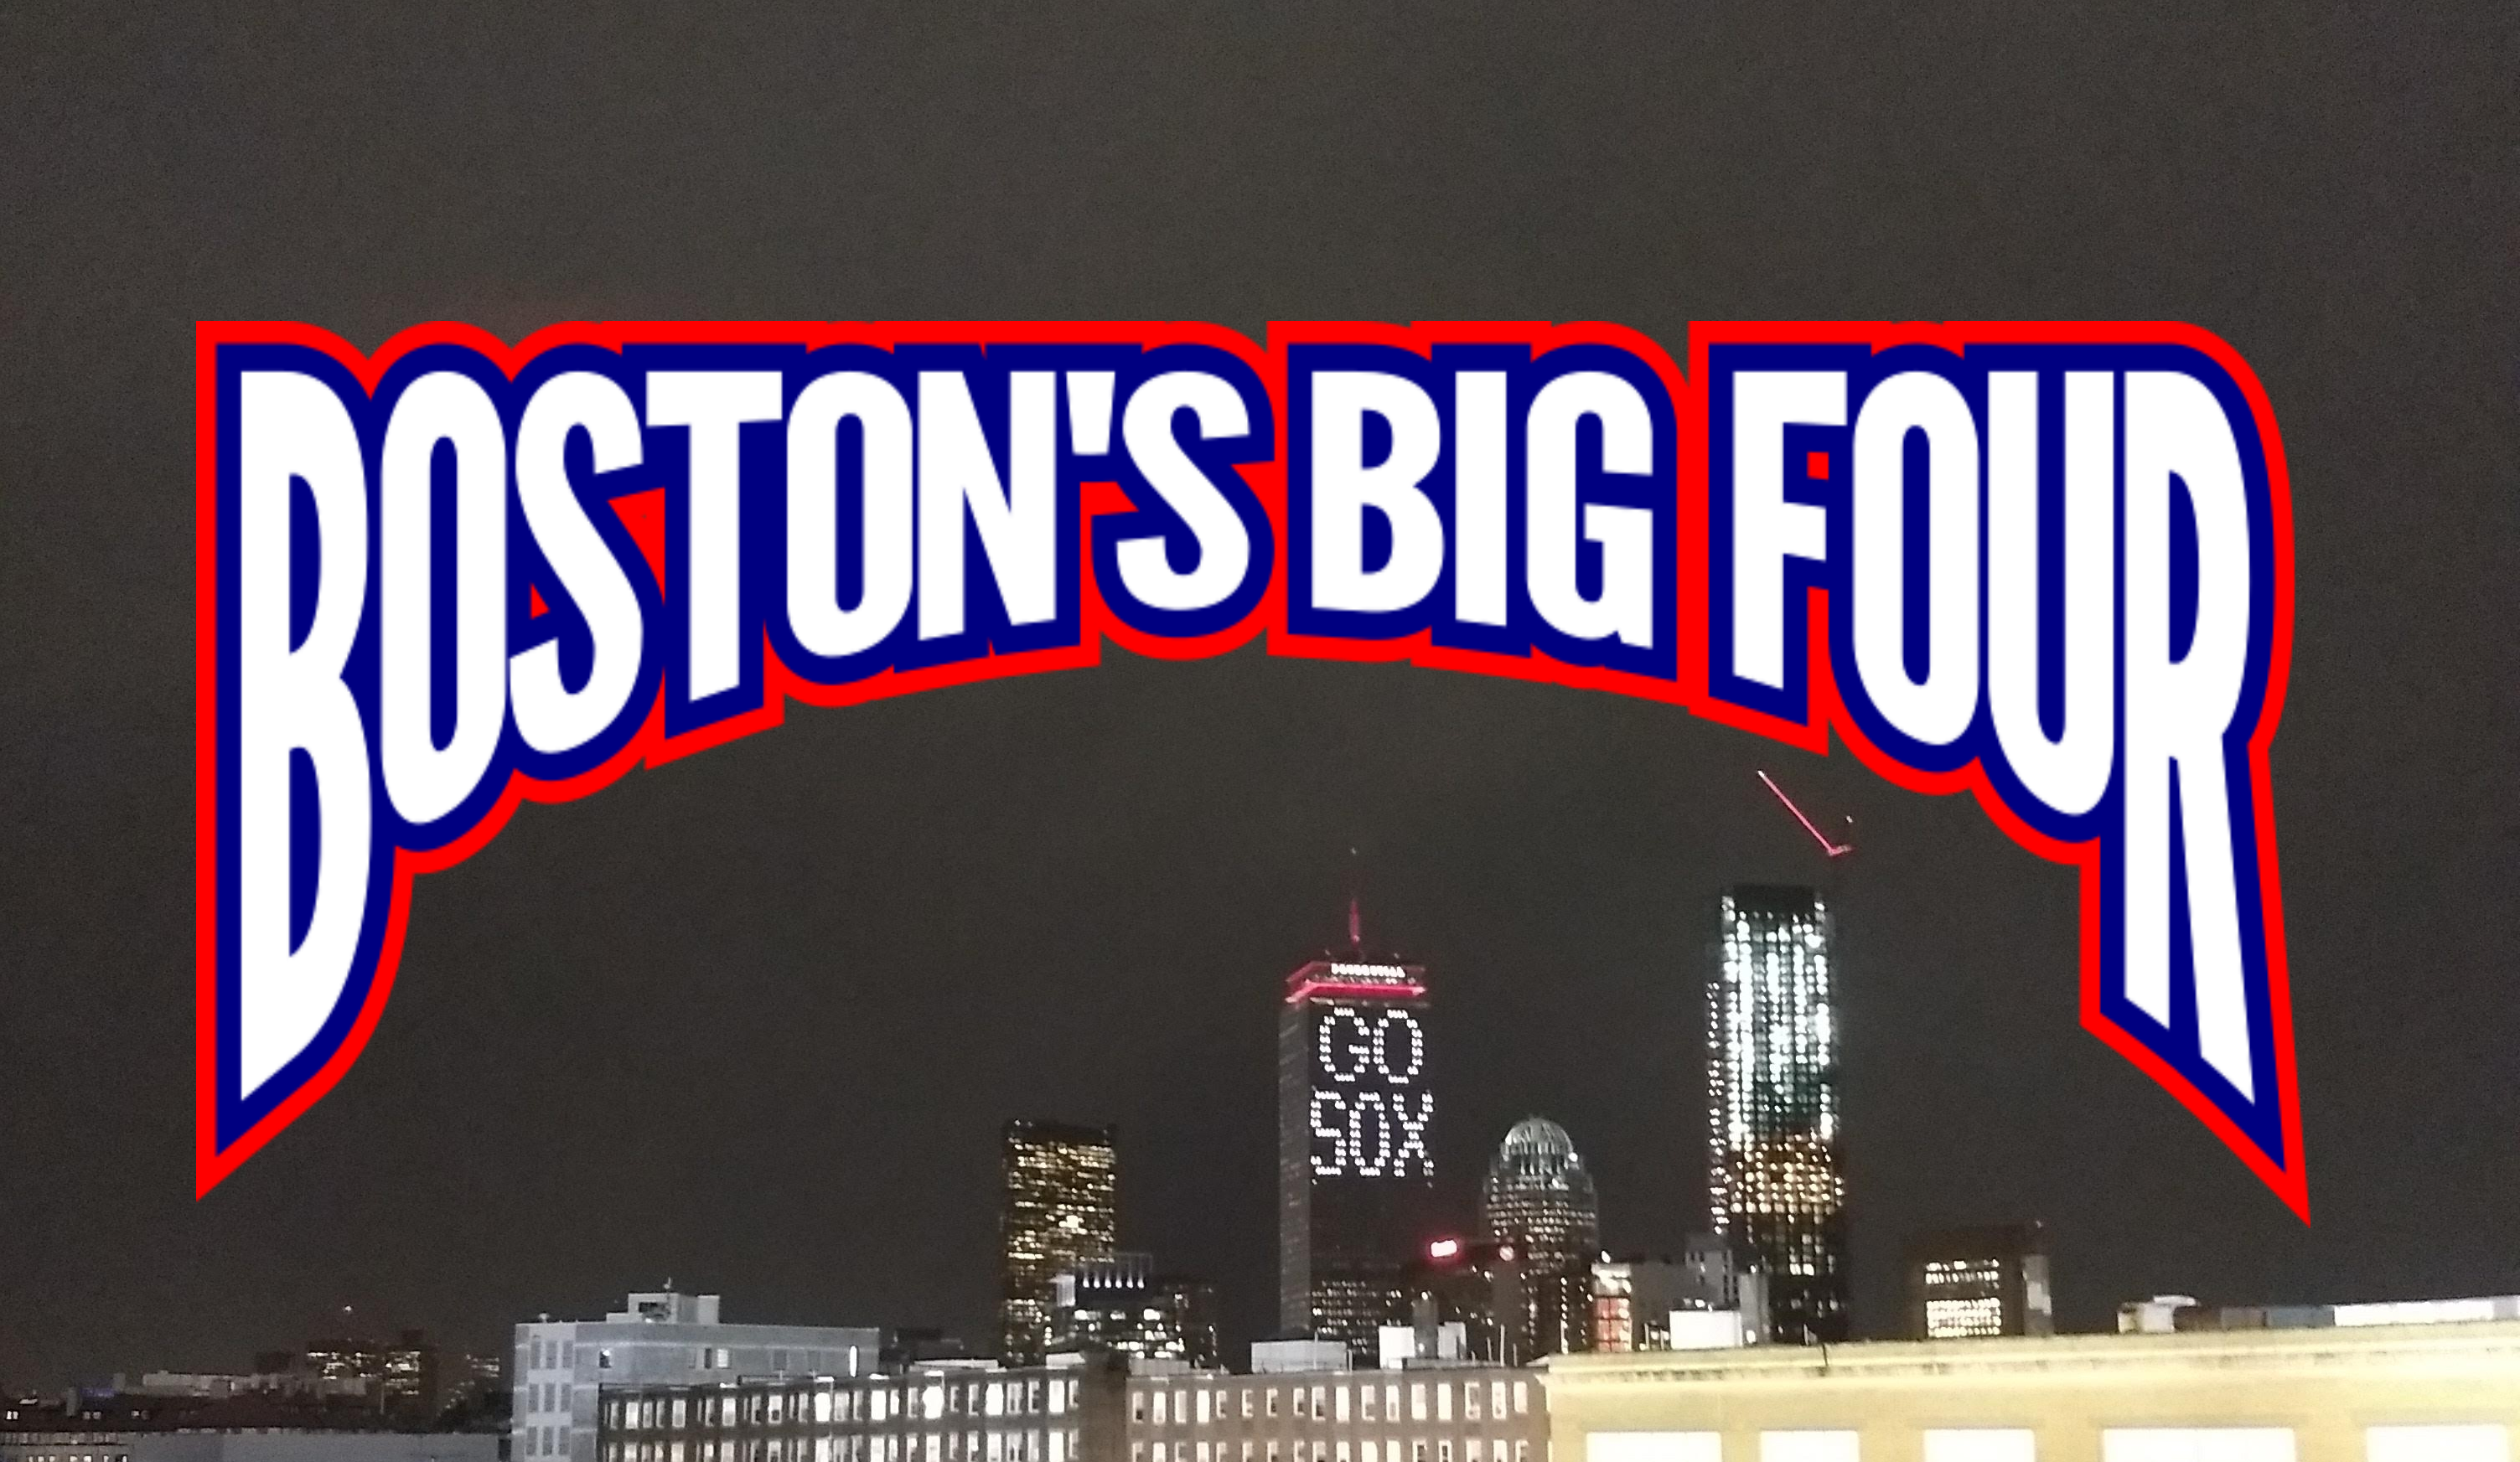 Boston's Big Four